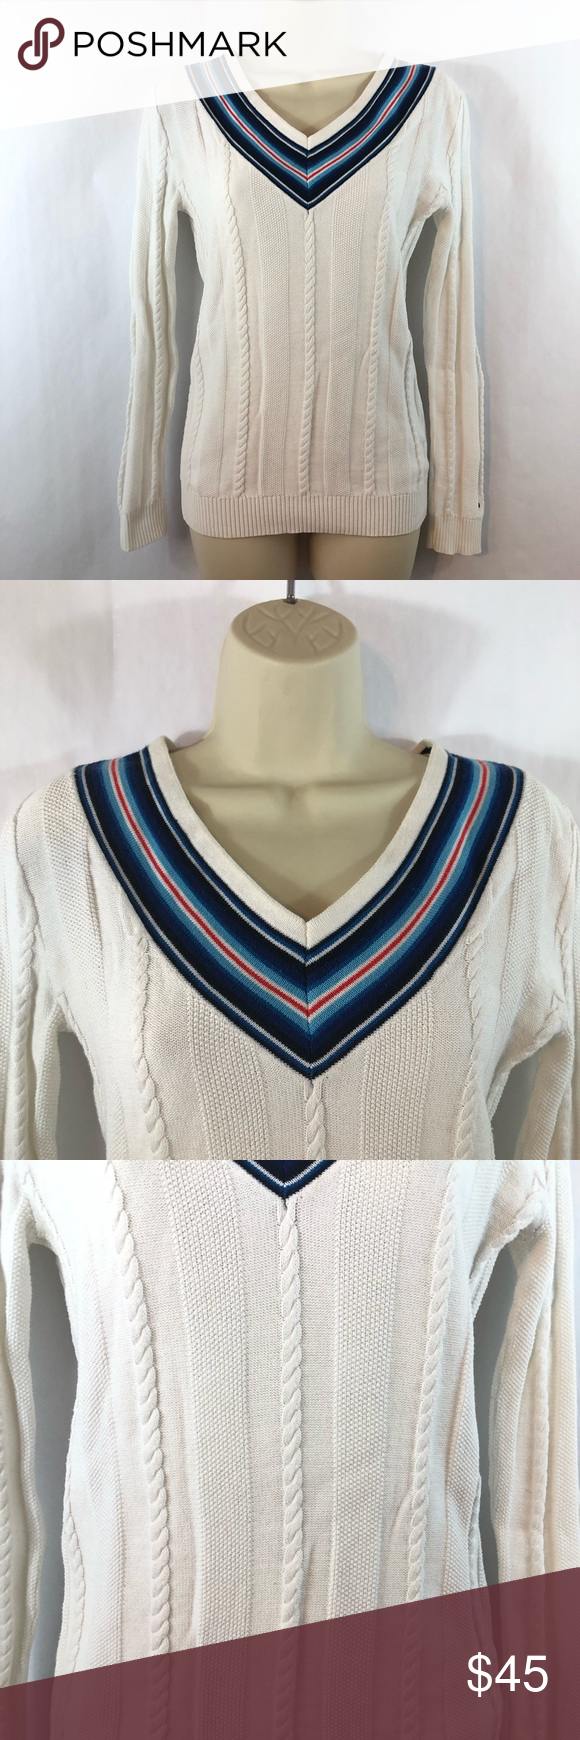 Tommy Hilfiger White Sweater Blue Red Striped Neck Tommy